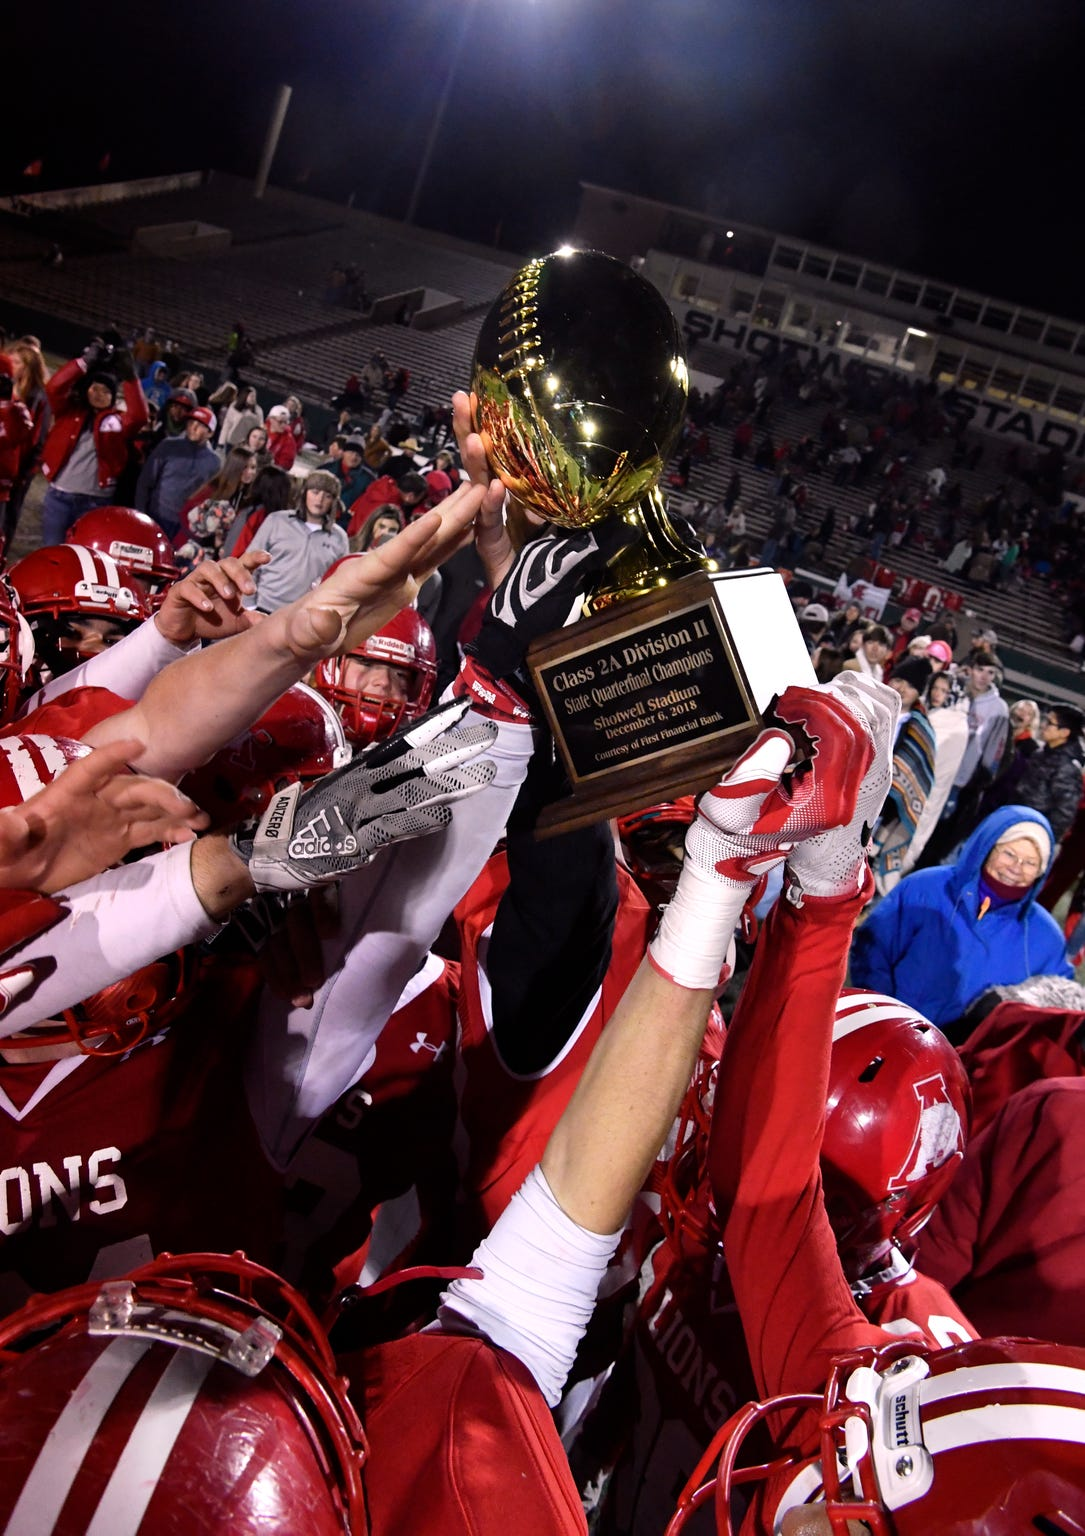 The Albany High School Lions hoist the championship trophy after Thursday's Class 2A Division II quarterfinal game at Shotwell Stadium Dec. 6, 2018. Final score was 41-28, Albany.